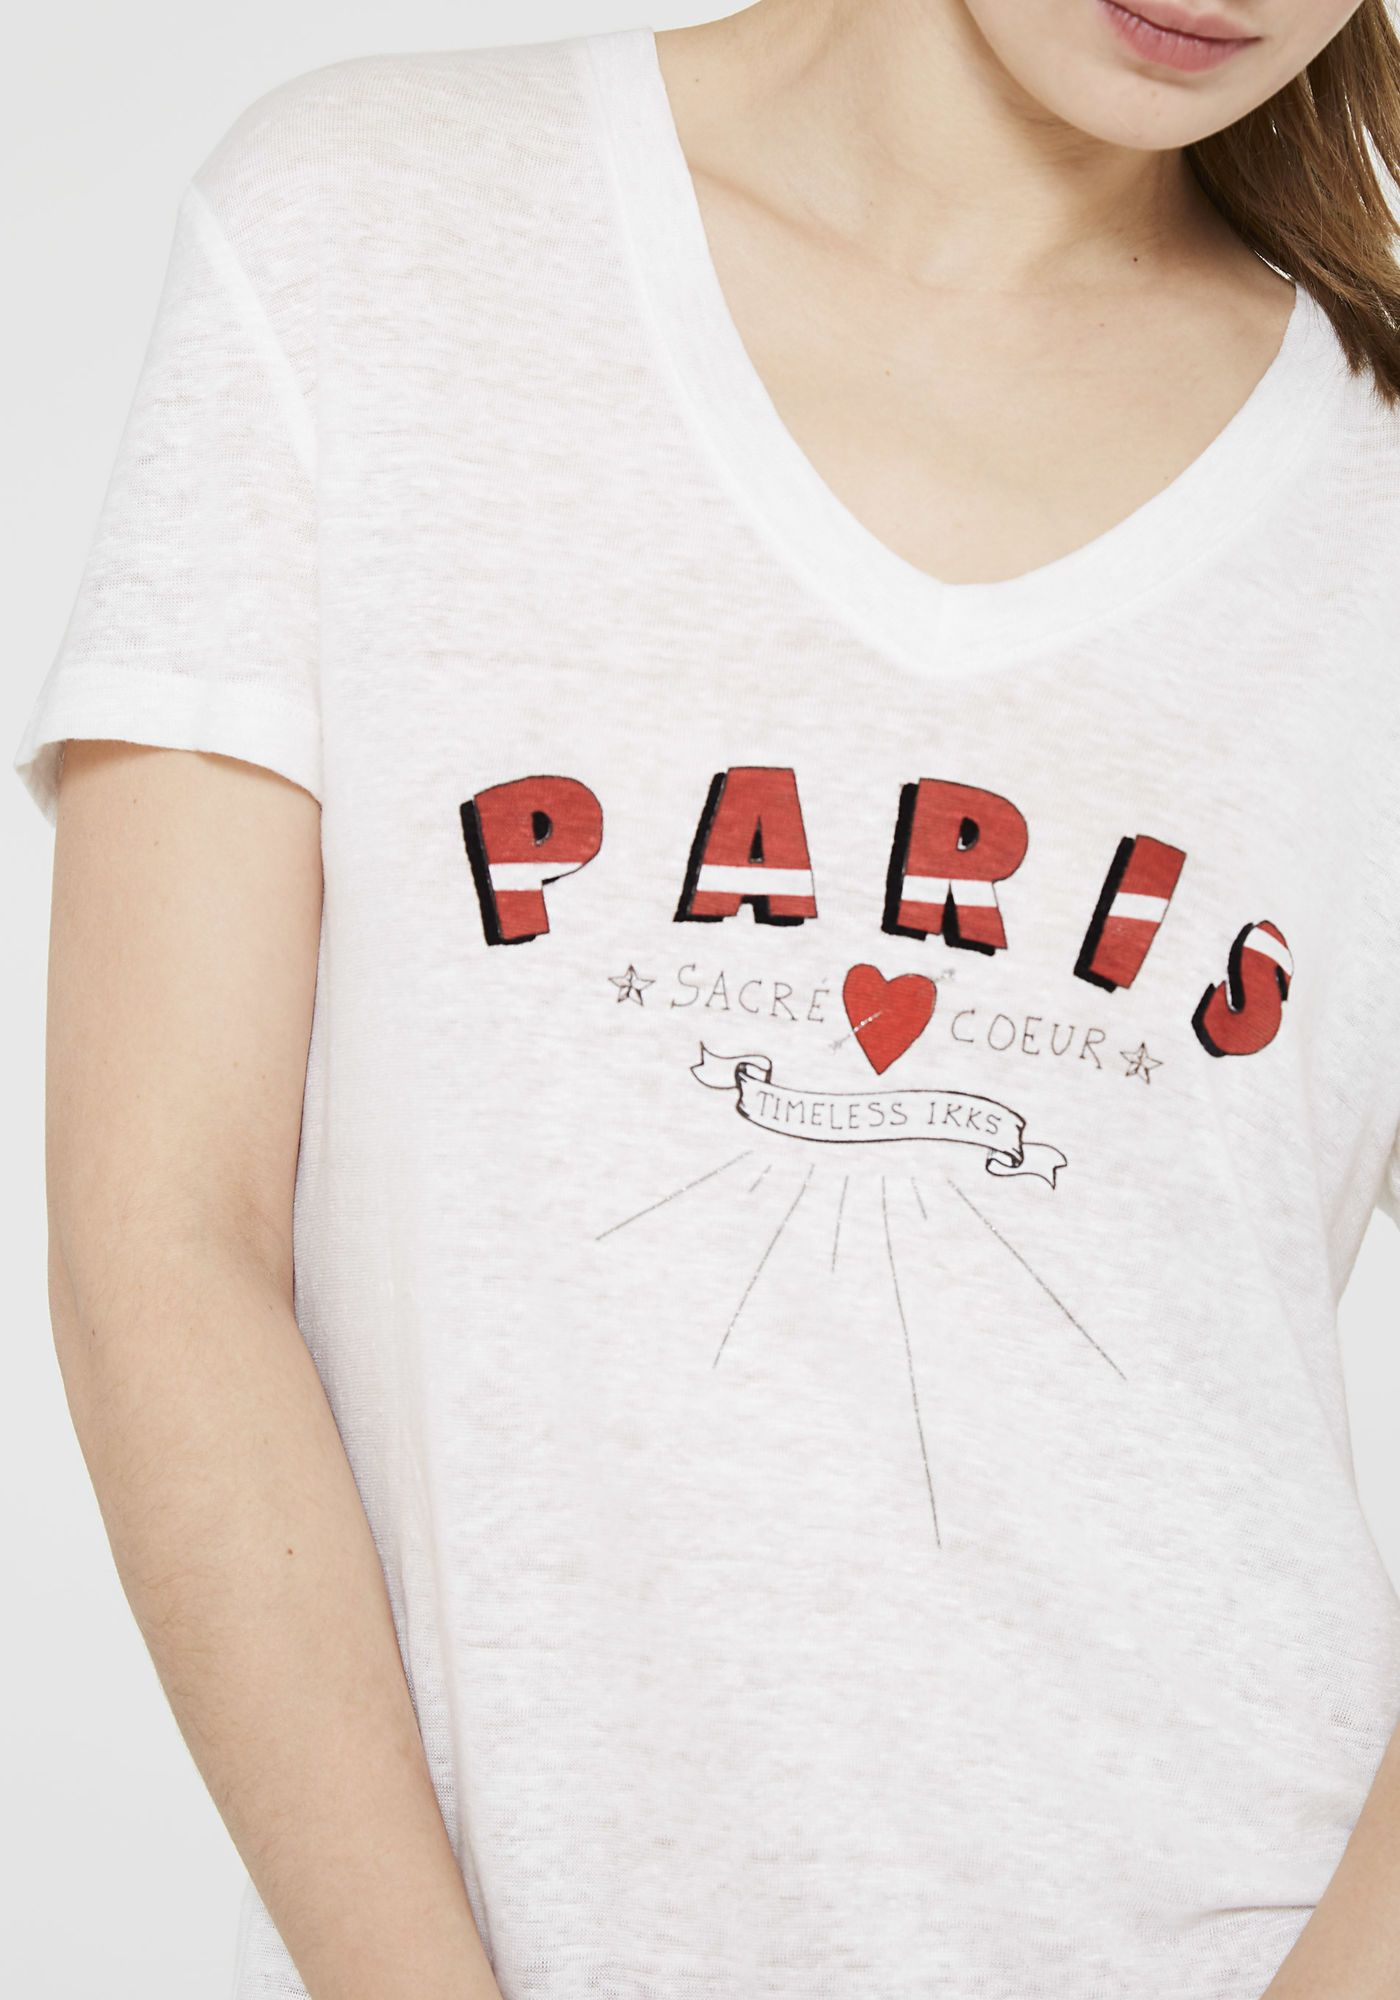 59b6f2c69 Women's Paris graphic T-shirt | IKKS Clothing | IKKS Women | Trend ...